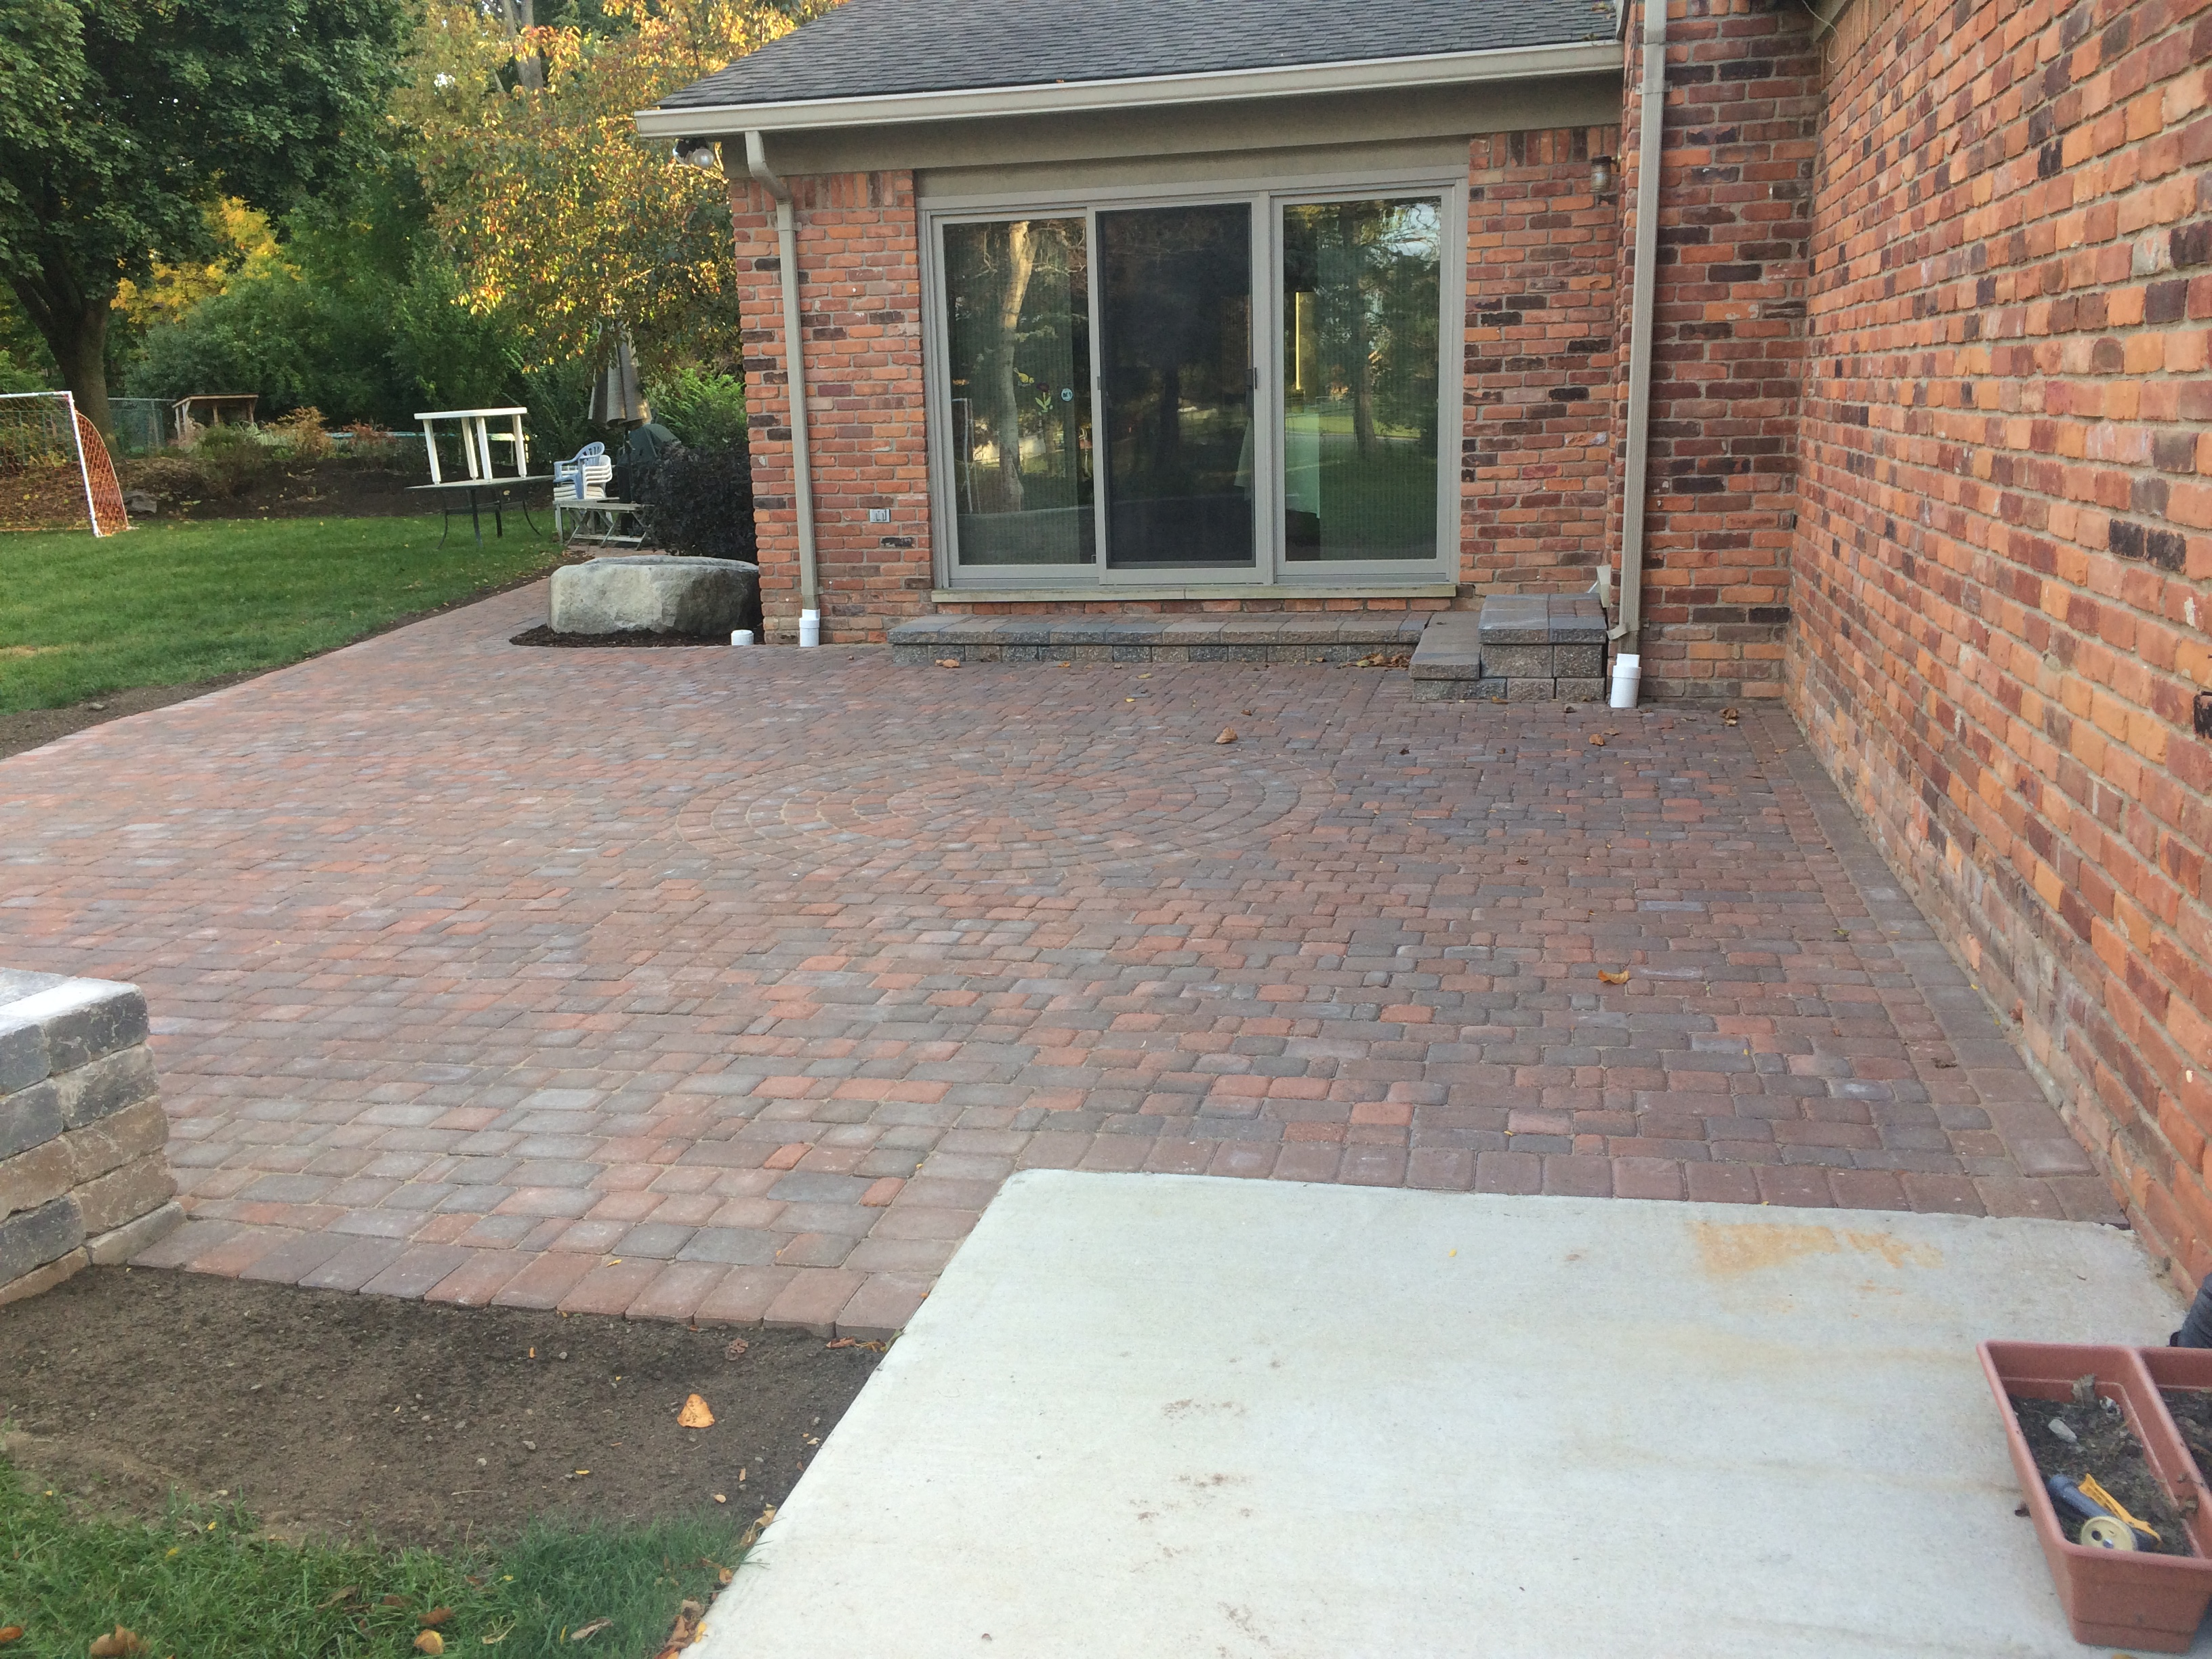 Patio Addition With A Small Sitting Wall Great Lawns Blog - Patio addition